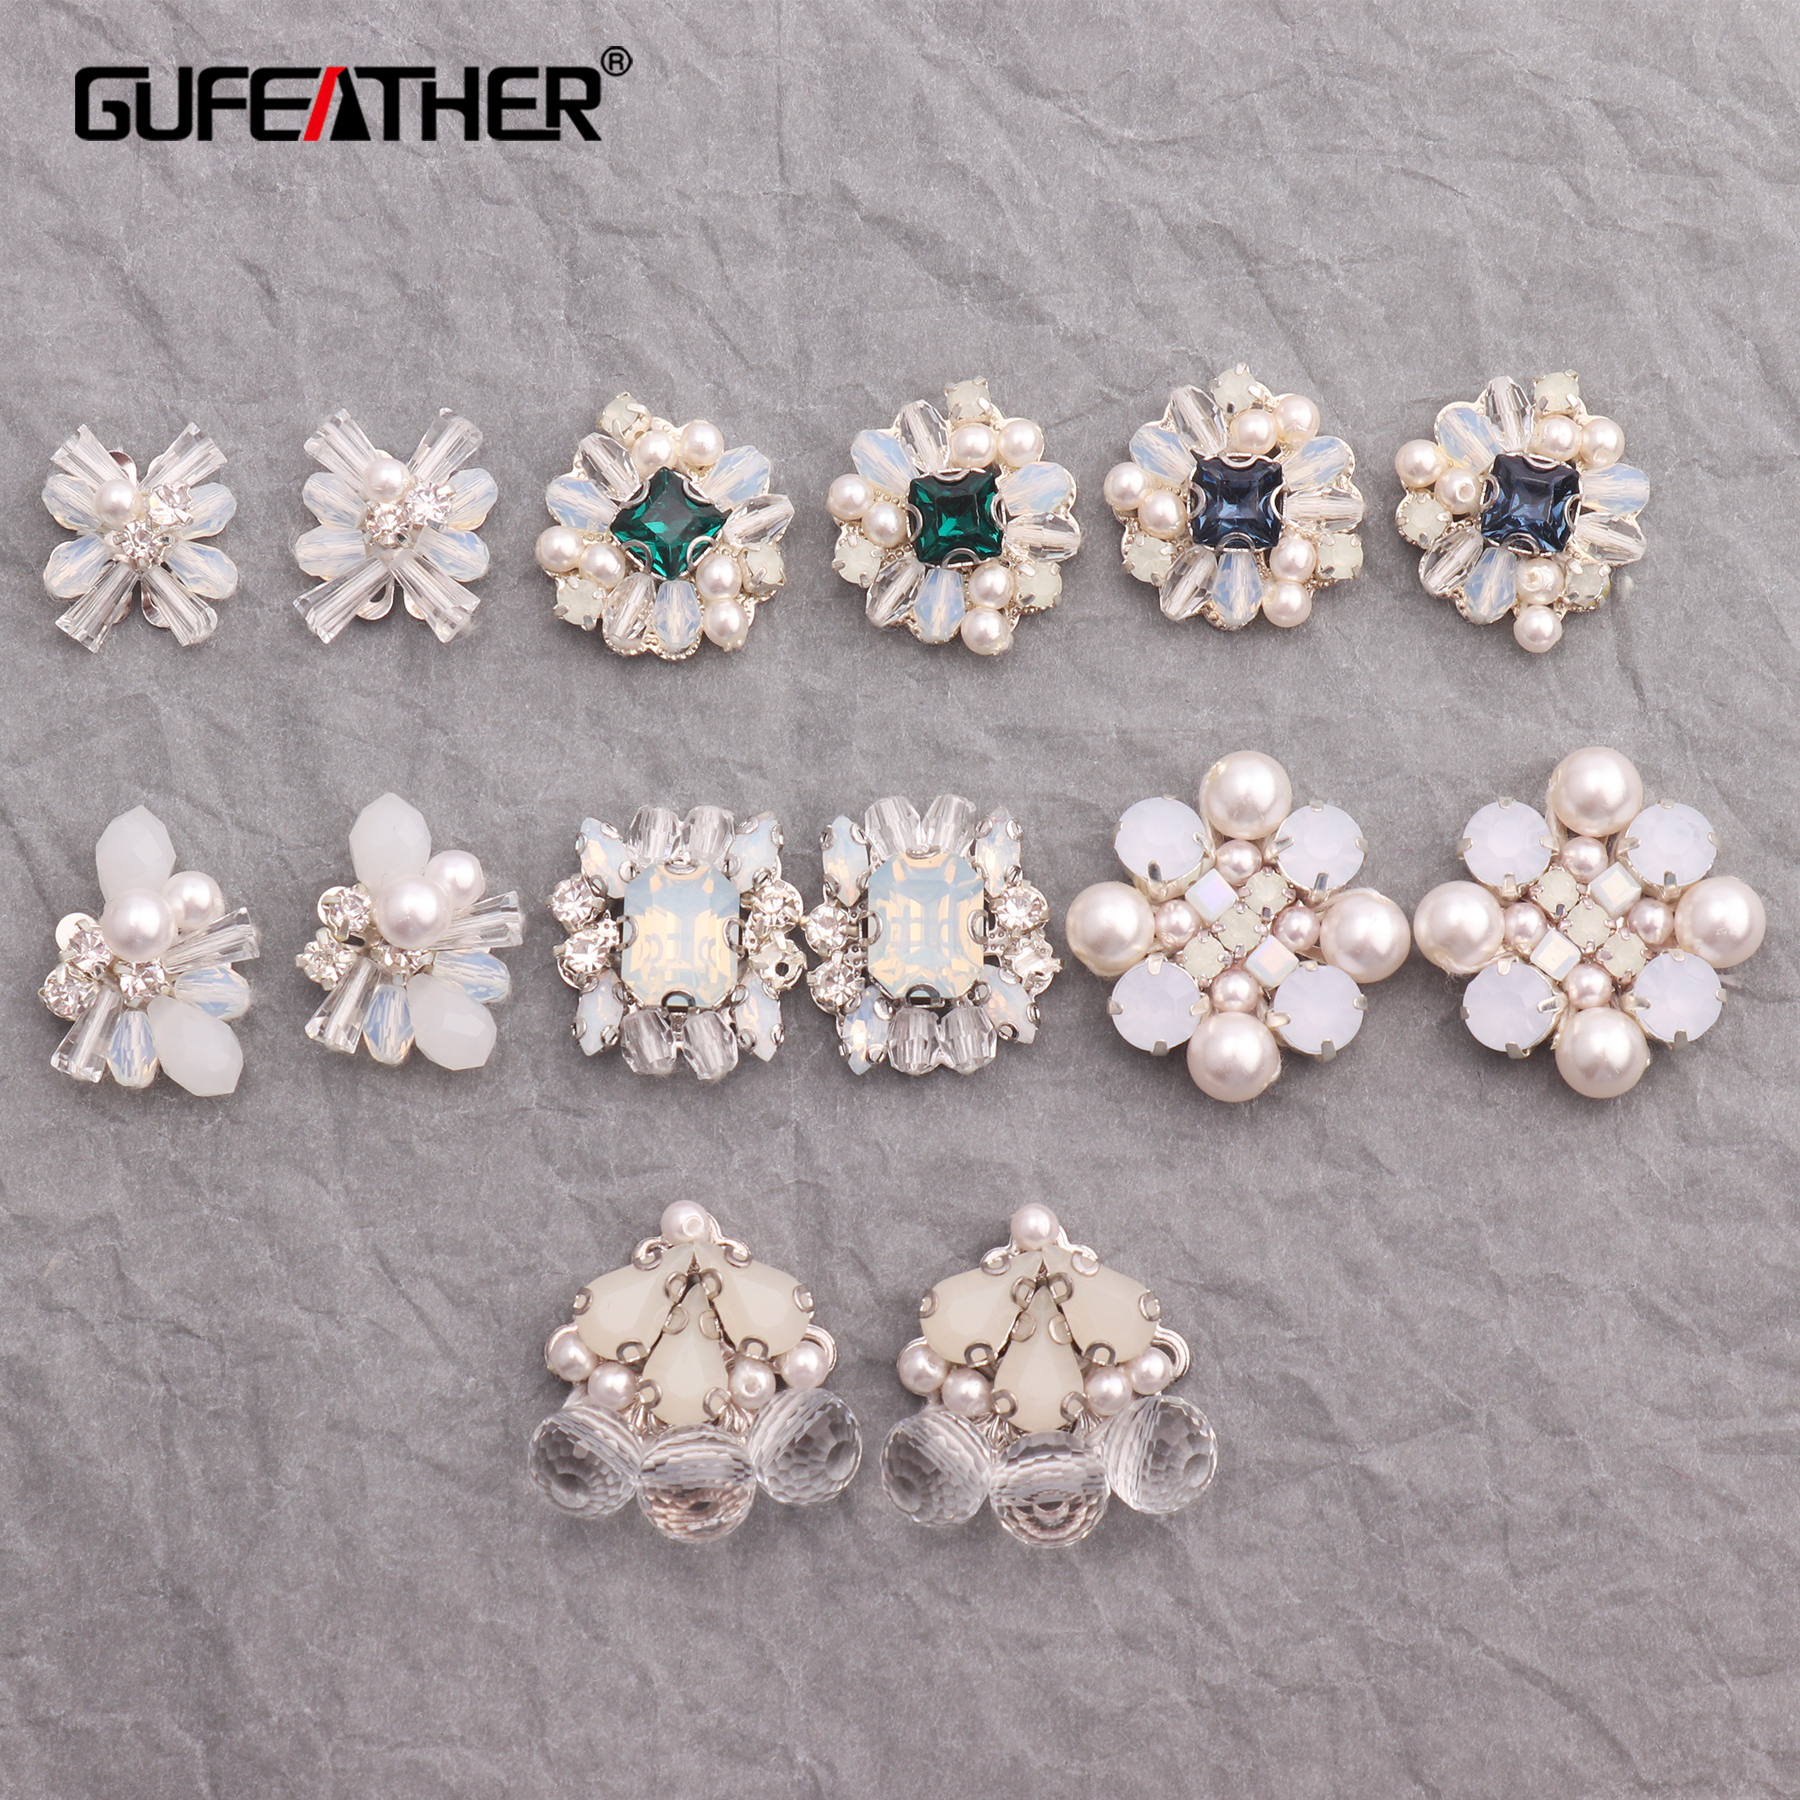 GUFEATHER M306,jewelry Making,earring Accessories,hand Made,jewelry Findings,glamour Earrings,jewelry Accessories,diy Earrings